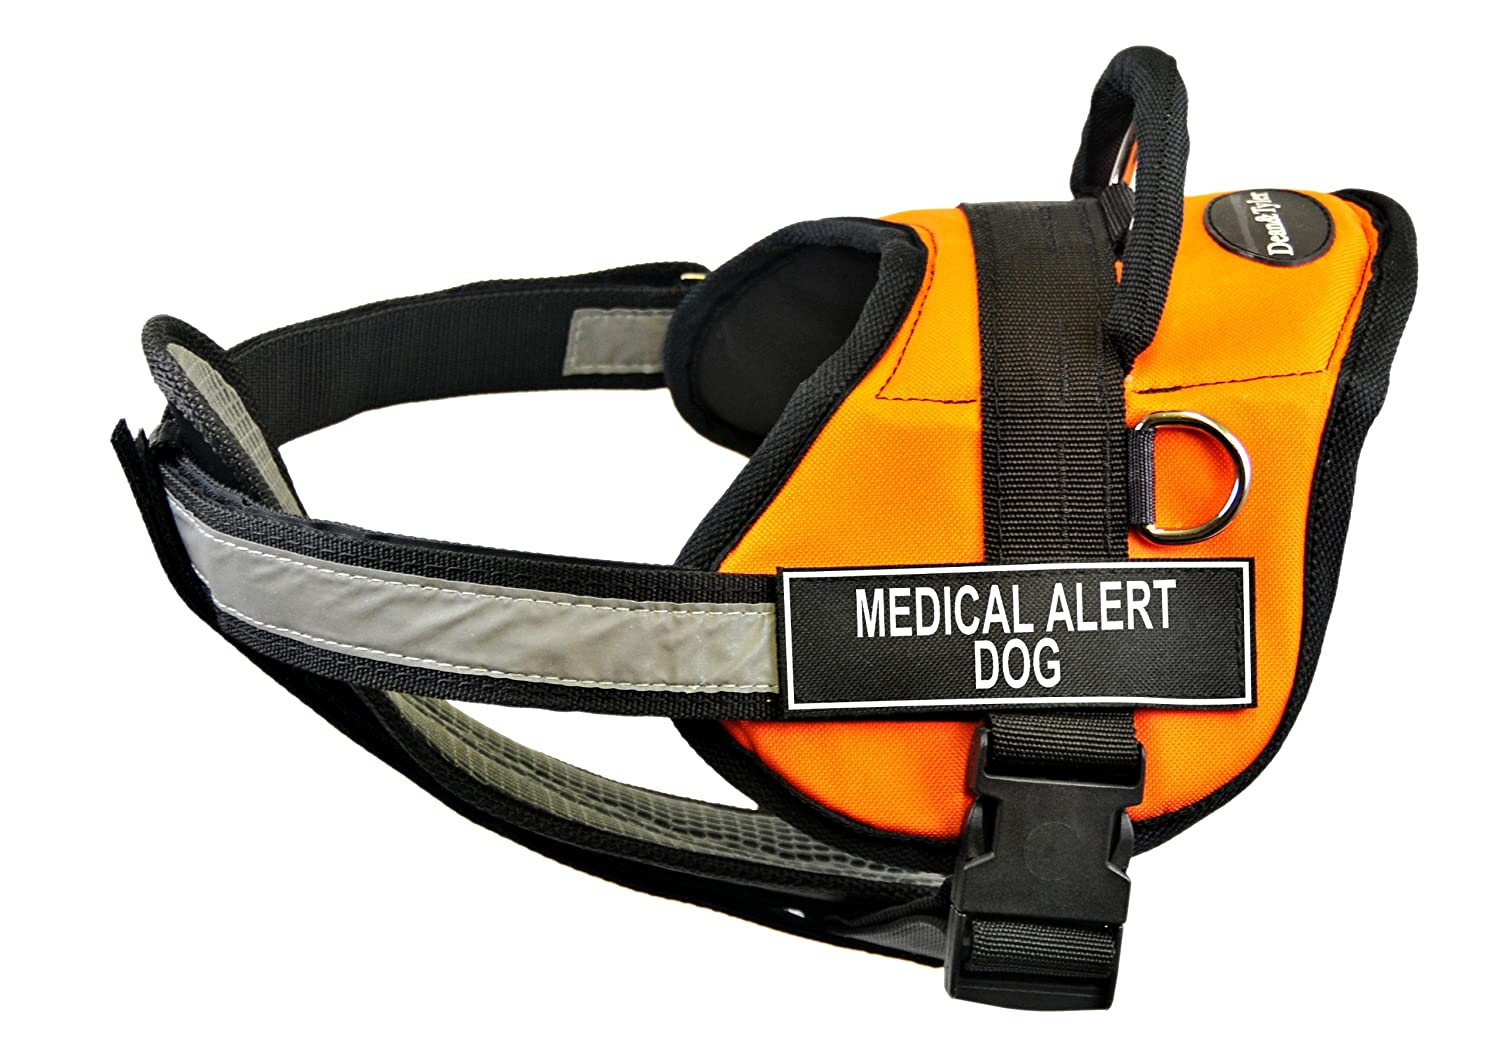 Dean & Tyler 25-Inch to 34-Inch Medical Alert Dog Harness with Padded Reflective Chest Straps, Small, orange Black